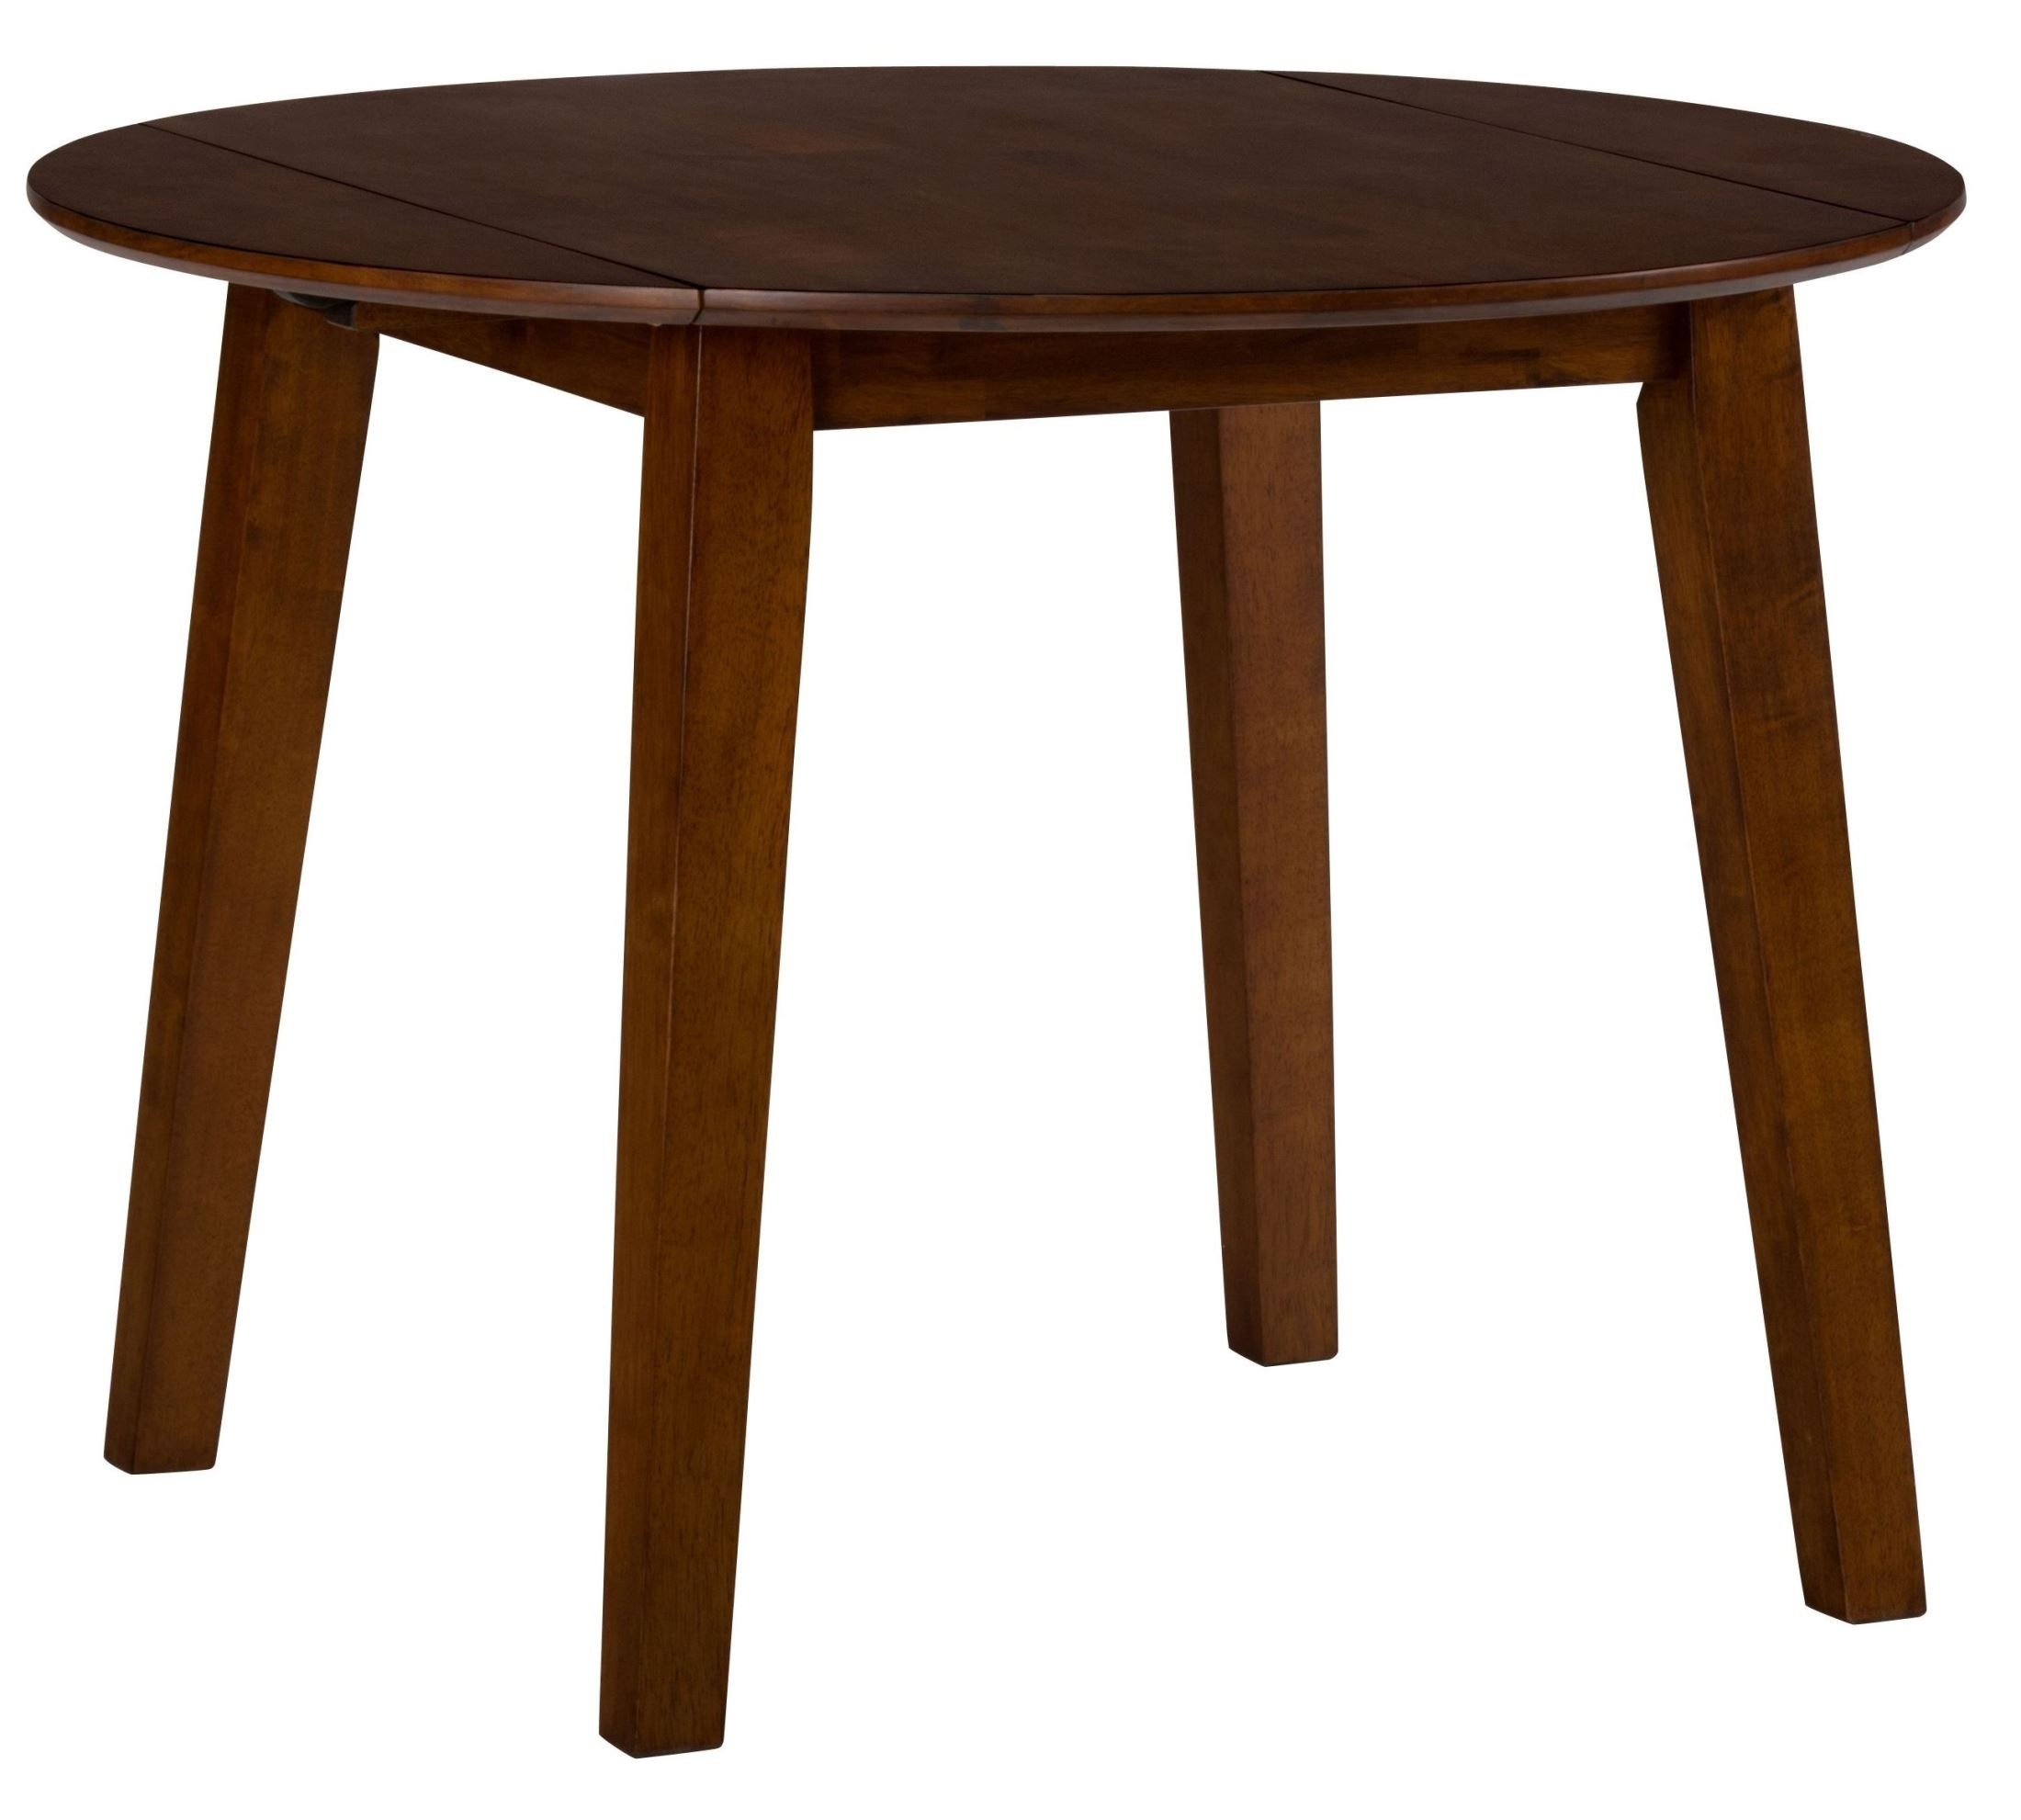 Simplicity caramel extendable round drop leaf dining table for Round drop leaf dining table